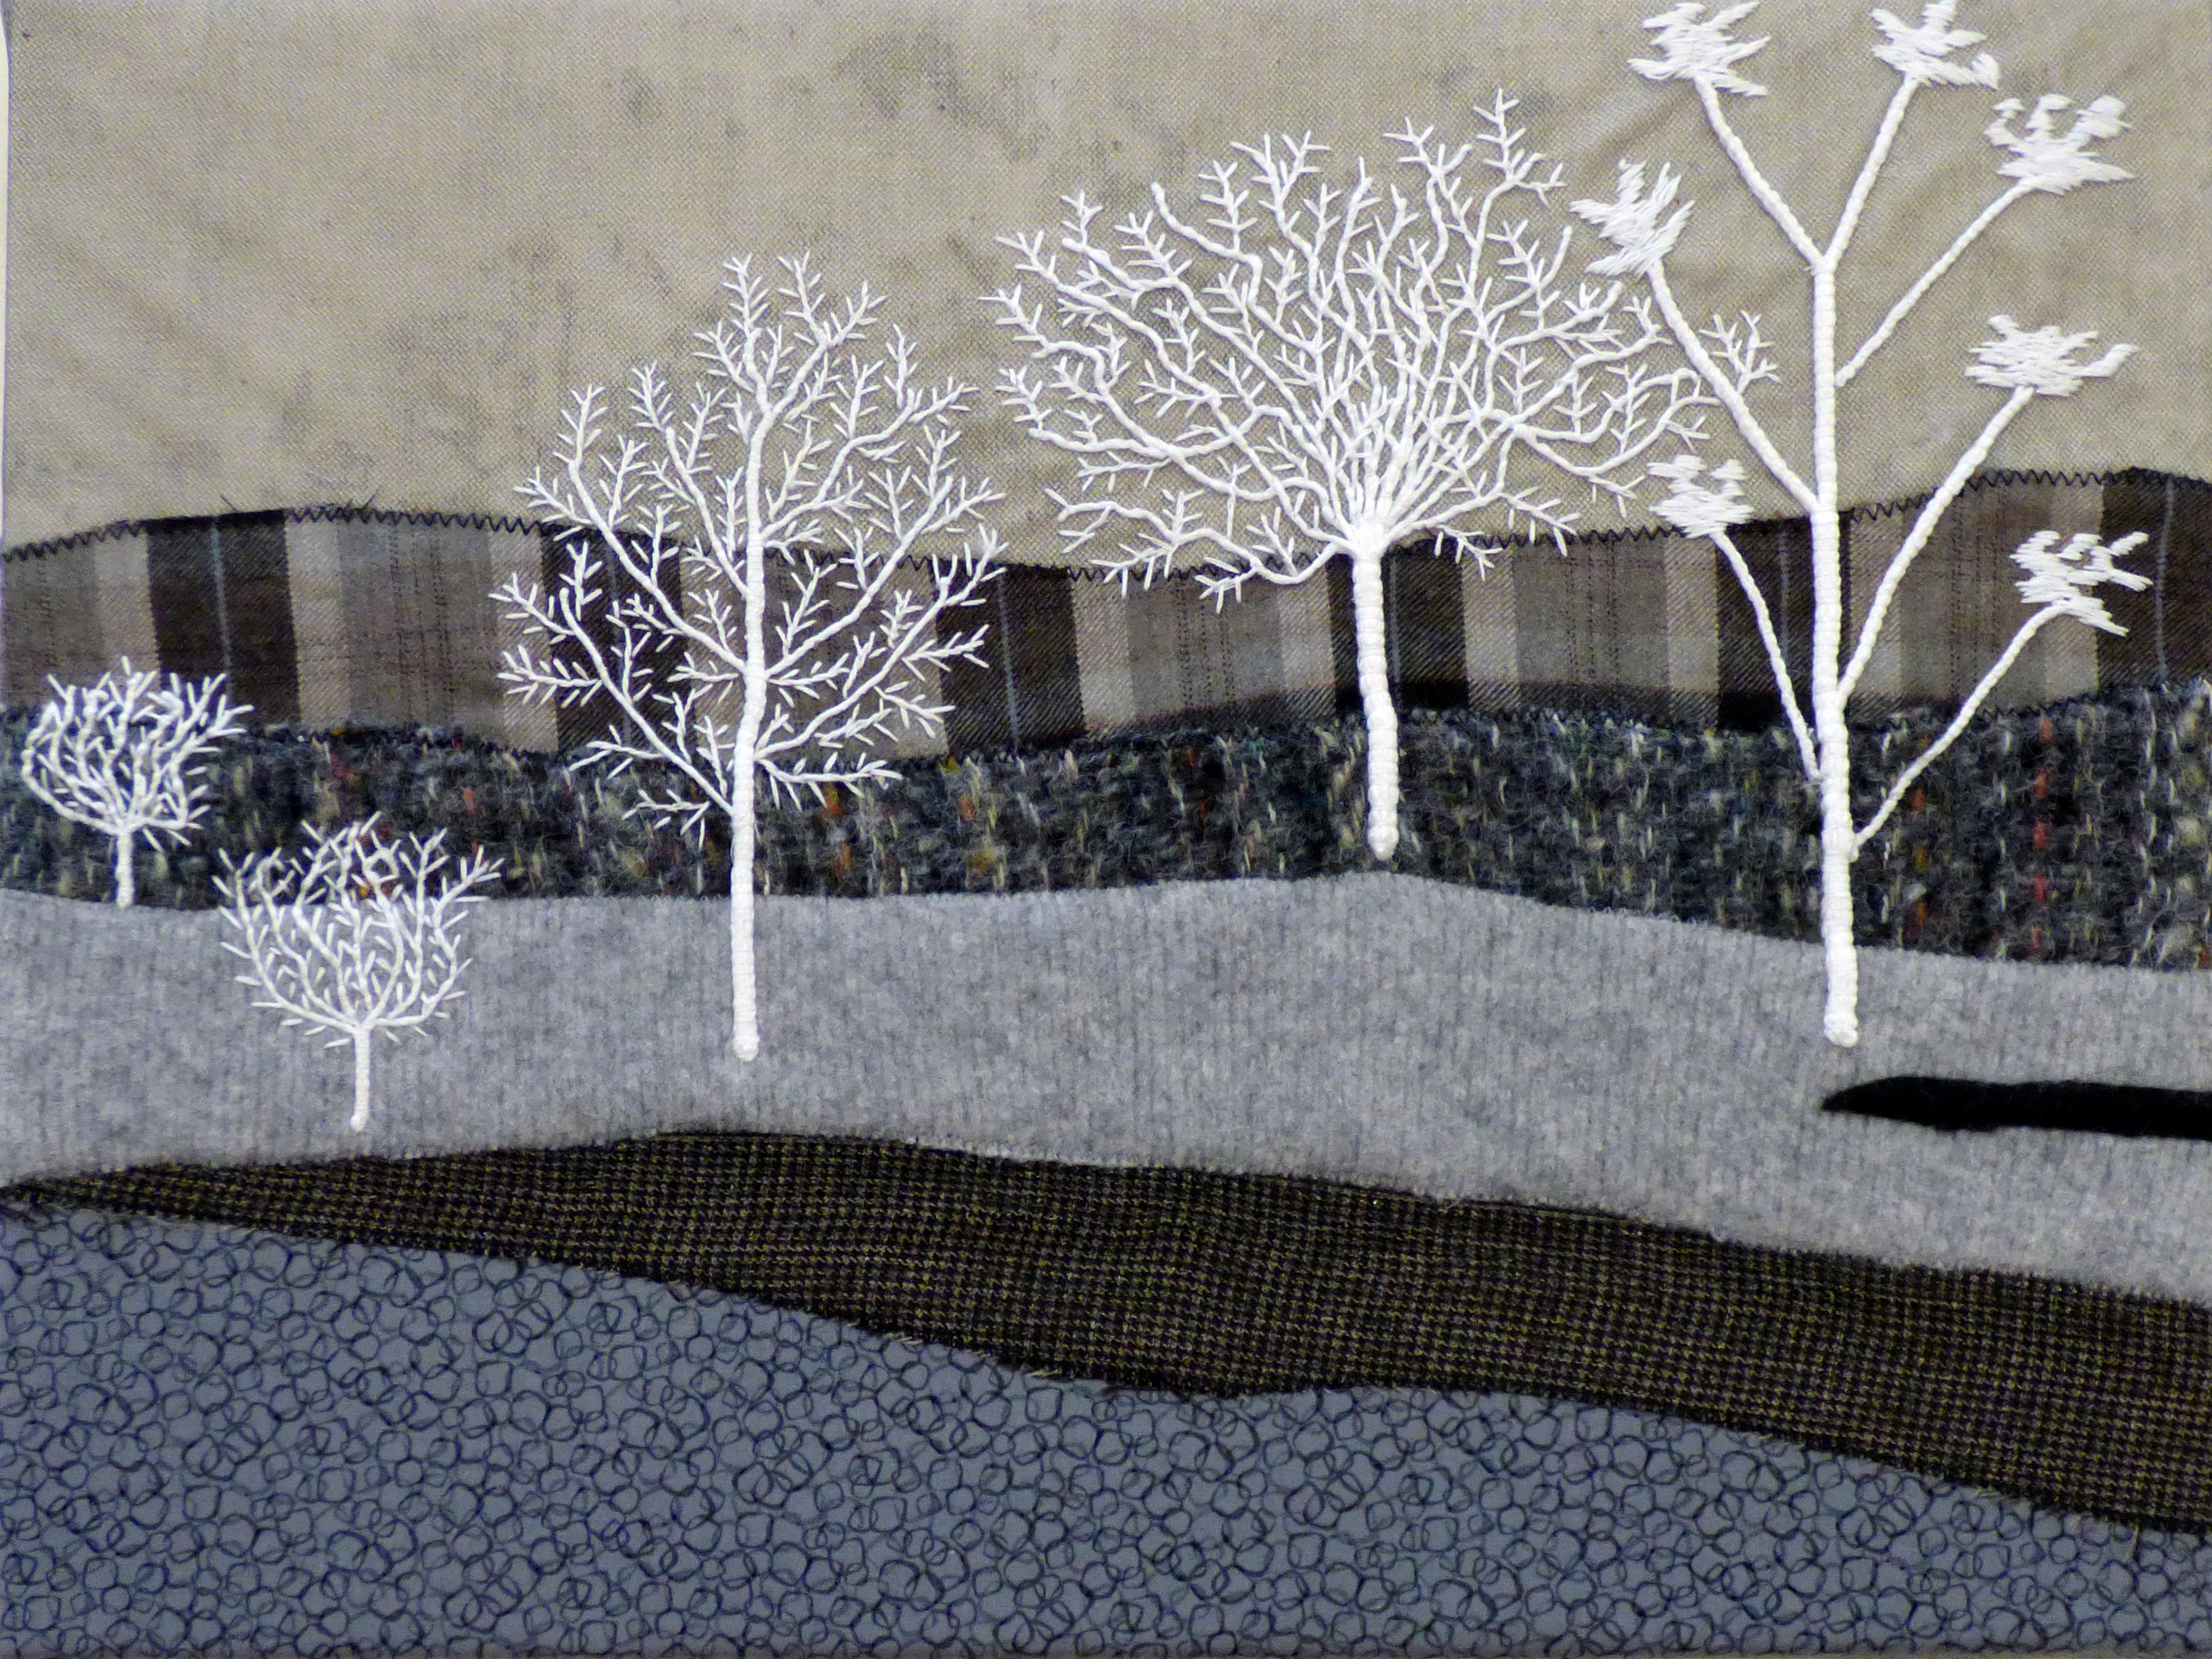 WHITE TREES AT MIDNIGHT by Christine Bardsley, Glossop & District EG, white thread couched tree trunks and branches on a textured background